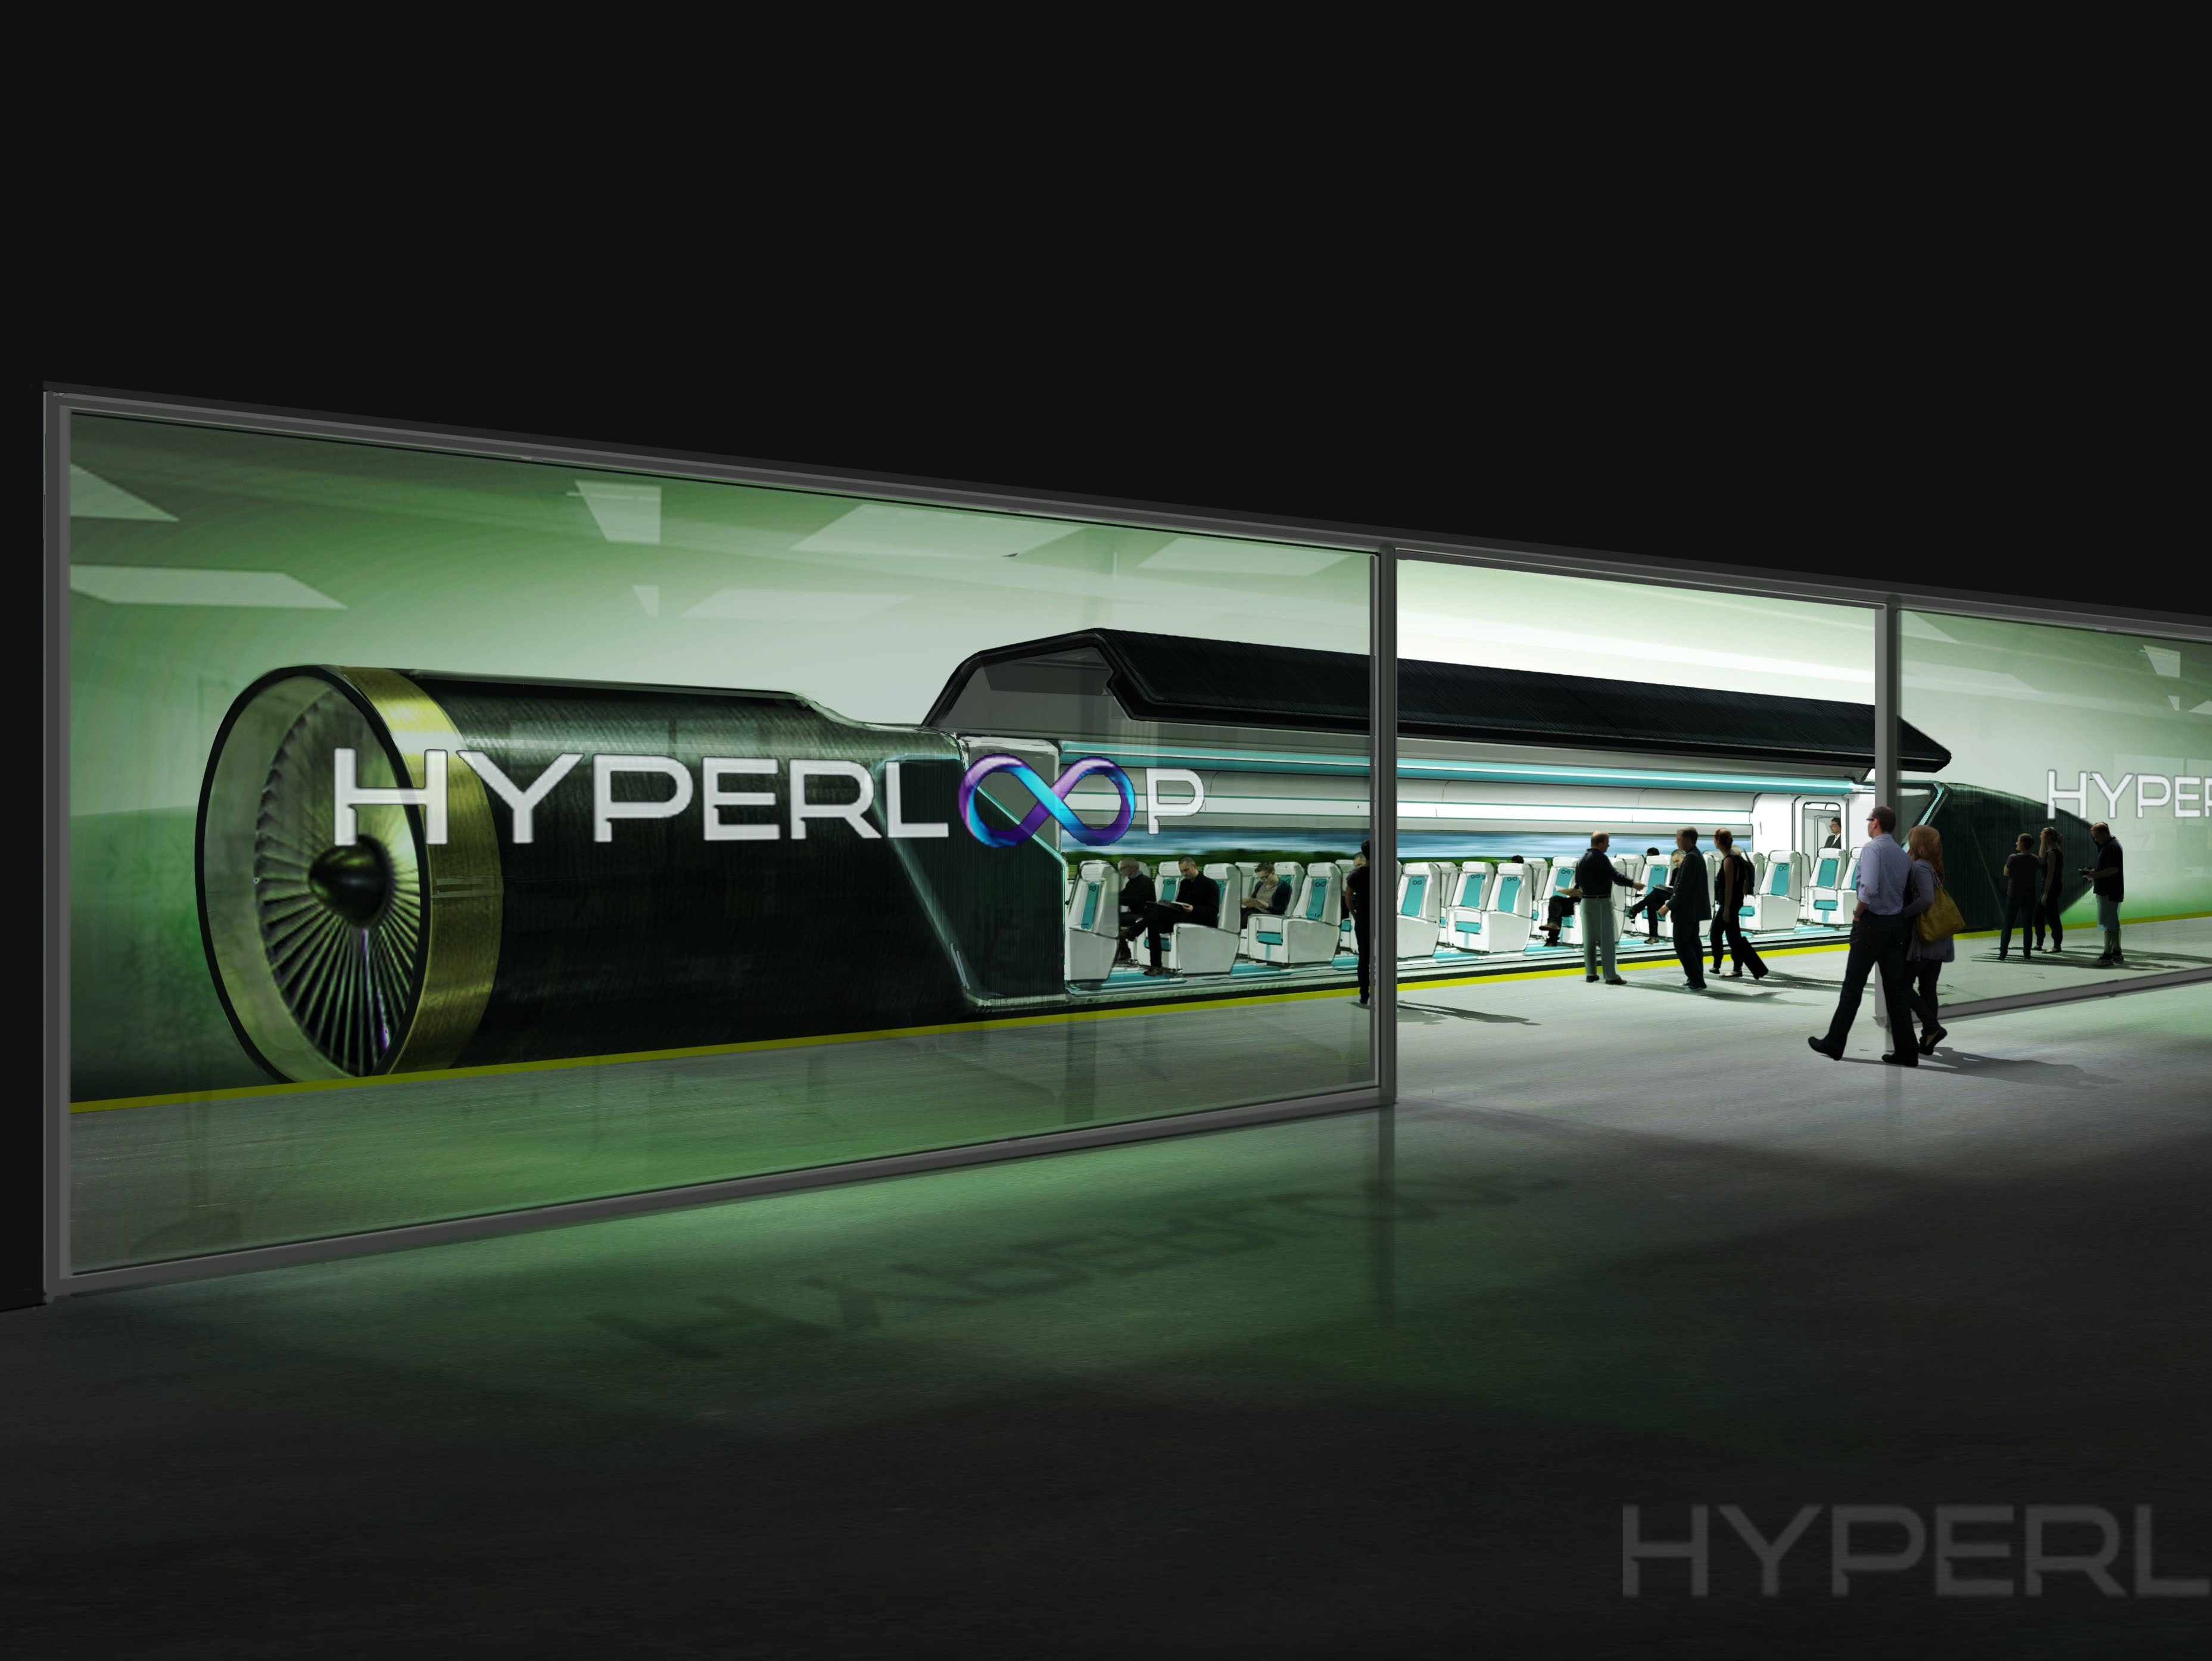 A rendering of passengers boarding a hyperloop.